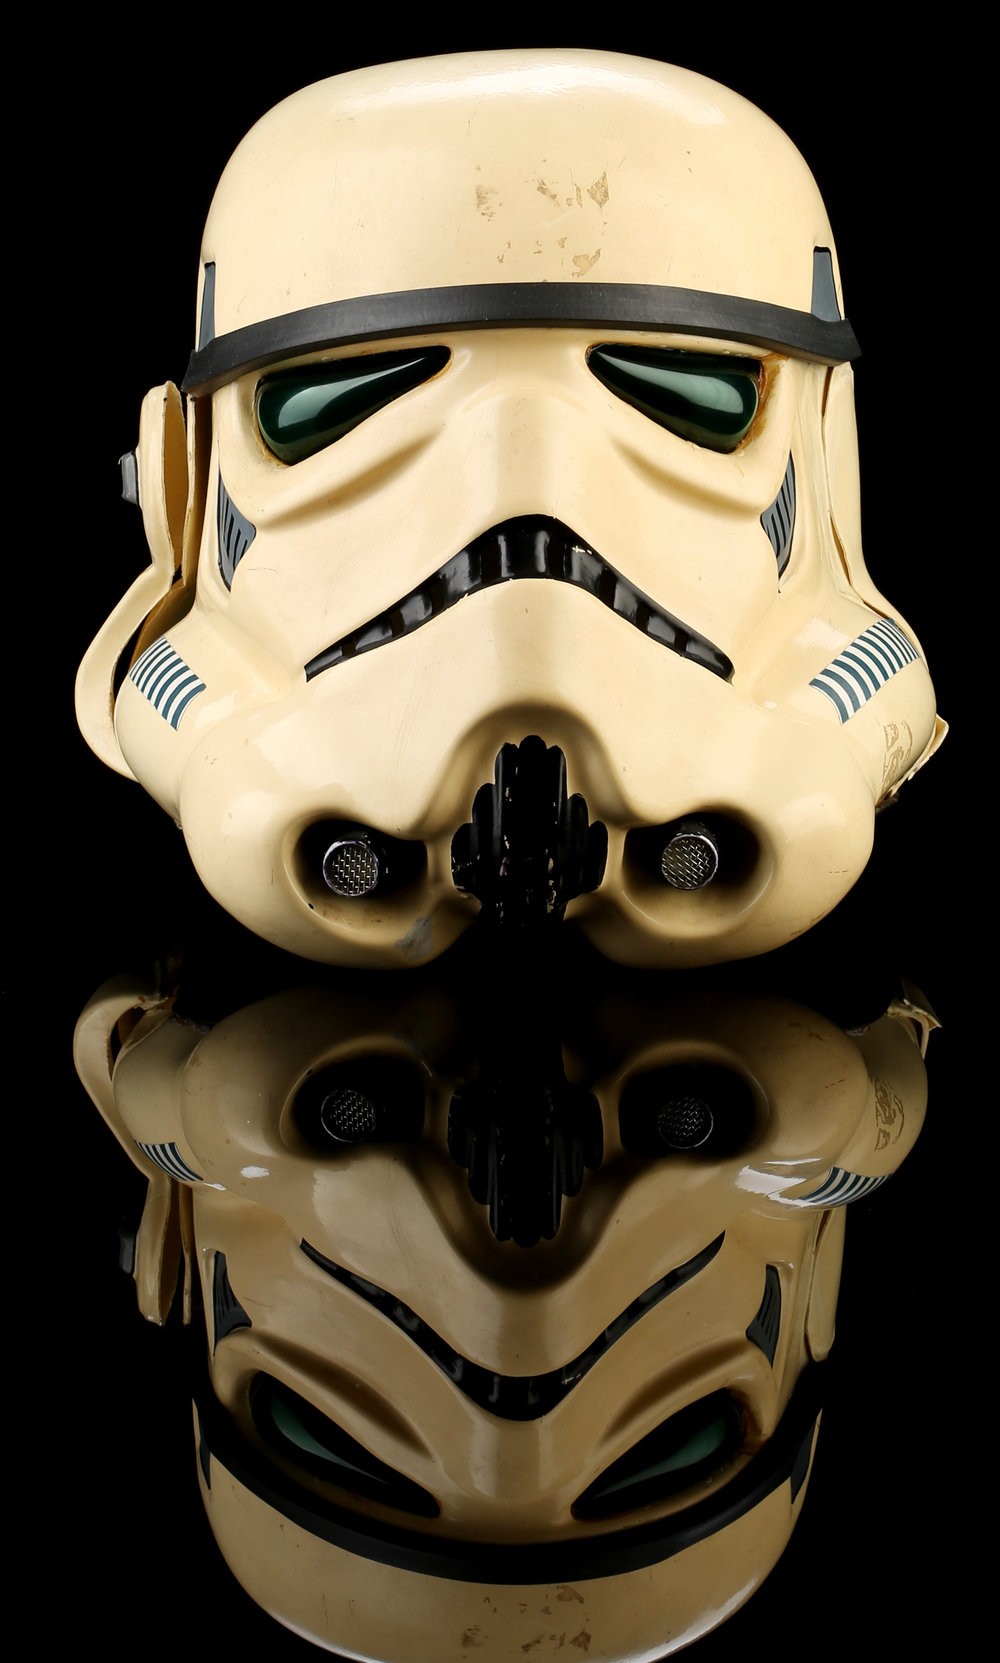 49449_Star_Wars_ESB_Storm_Trooper_Helmet_2.jpg